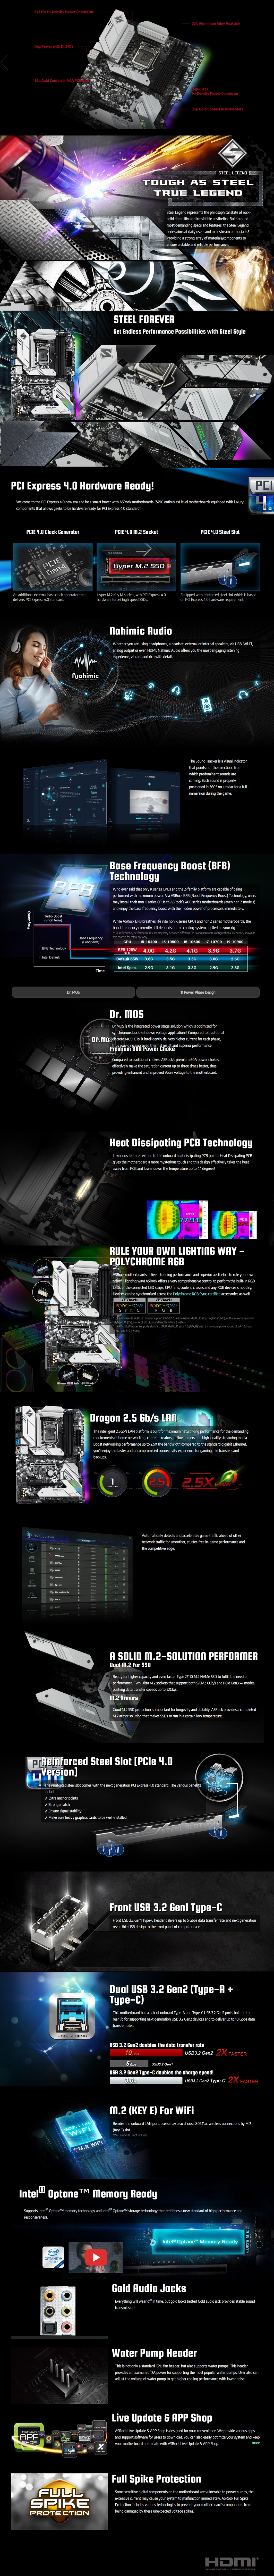 A large marketing image providing additional information about the product ASRock H470 Steel Legend LGA1200 ATX Desktop Motherboard - Additional alt info not provided